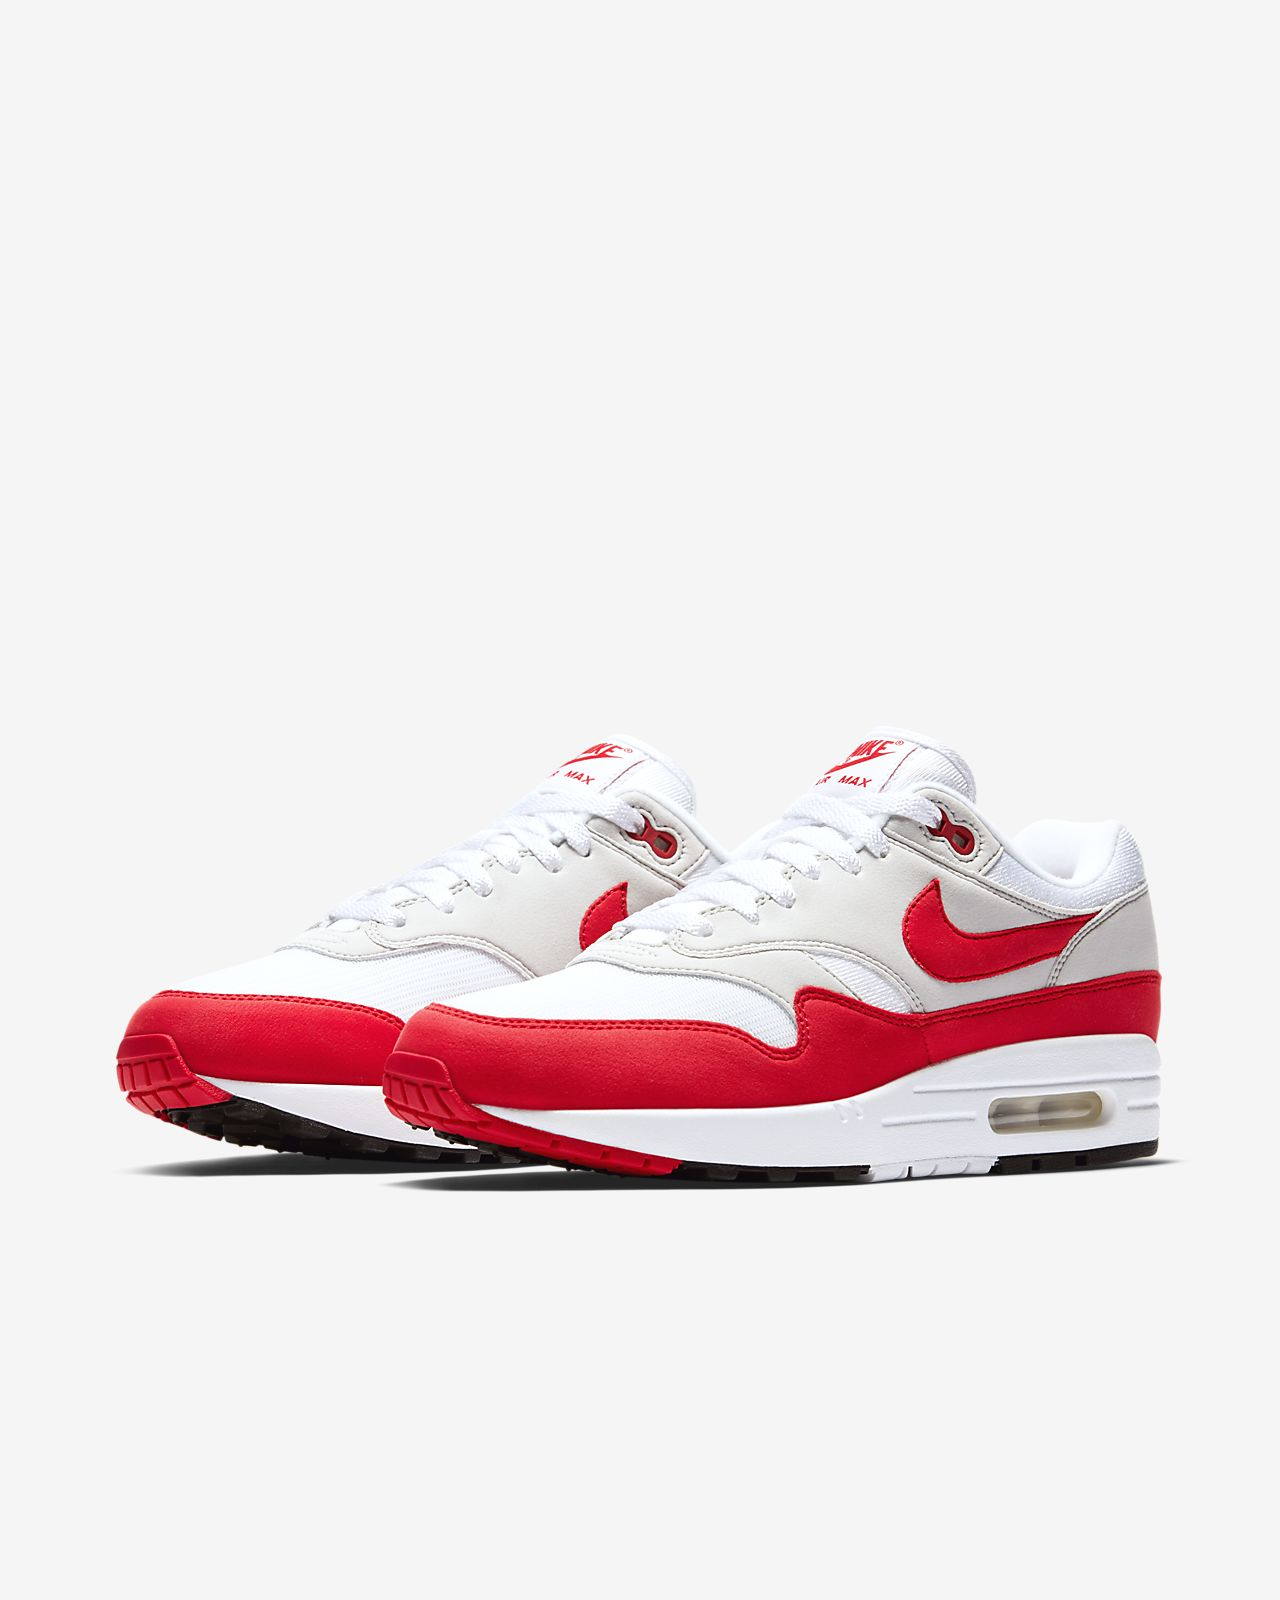 air max 1 anniversary sizing nz